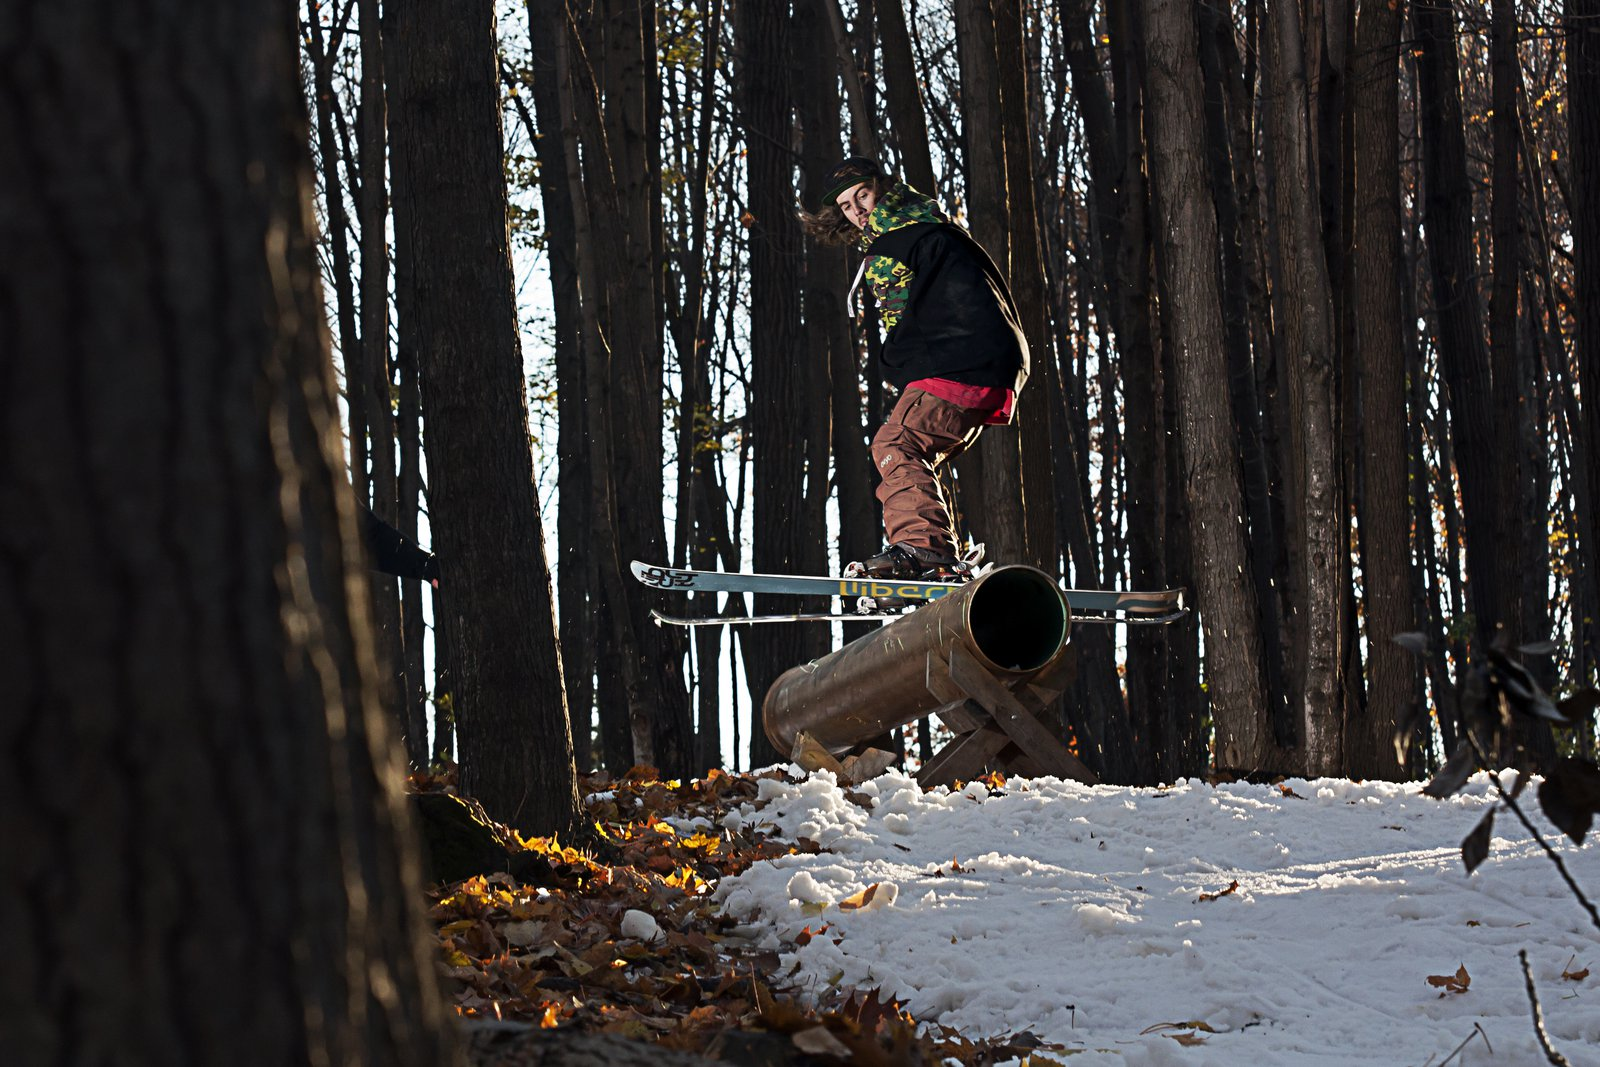 Geoff Lovelace Fall Session